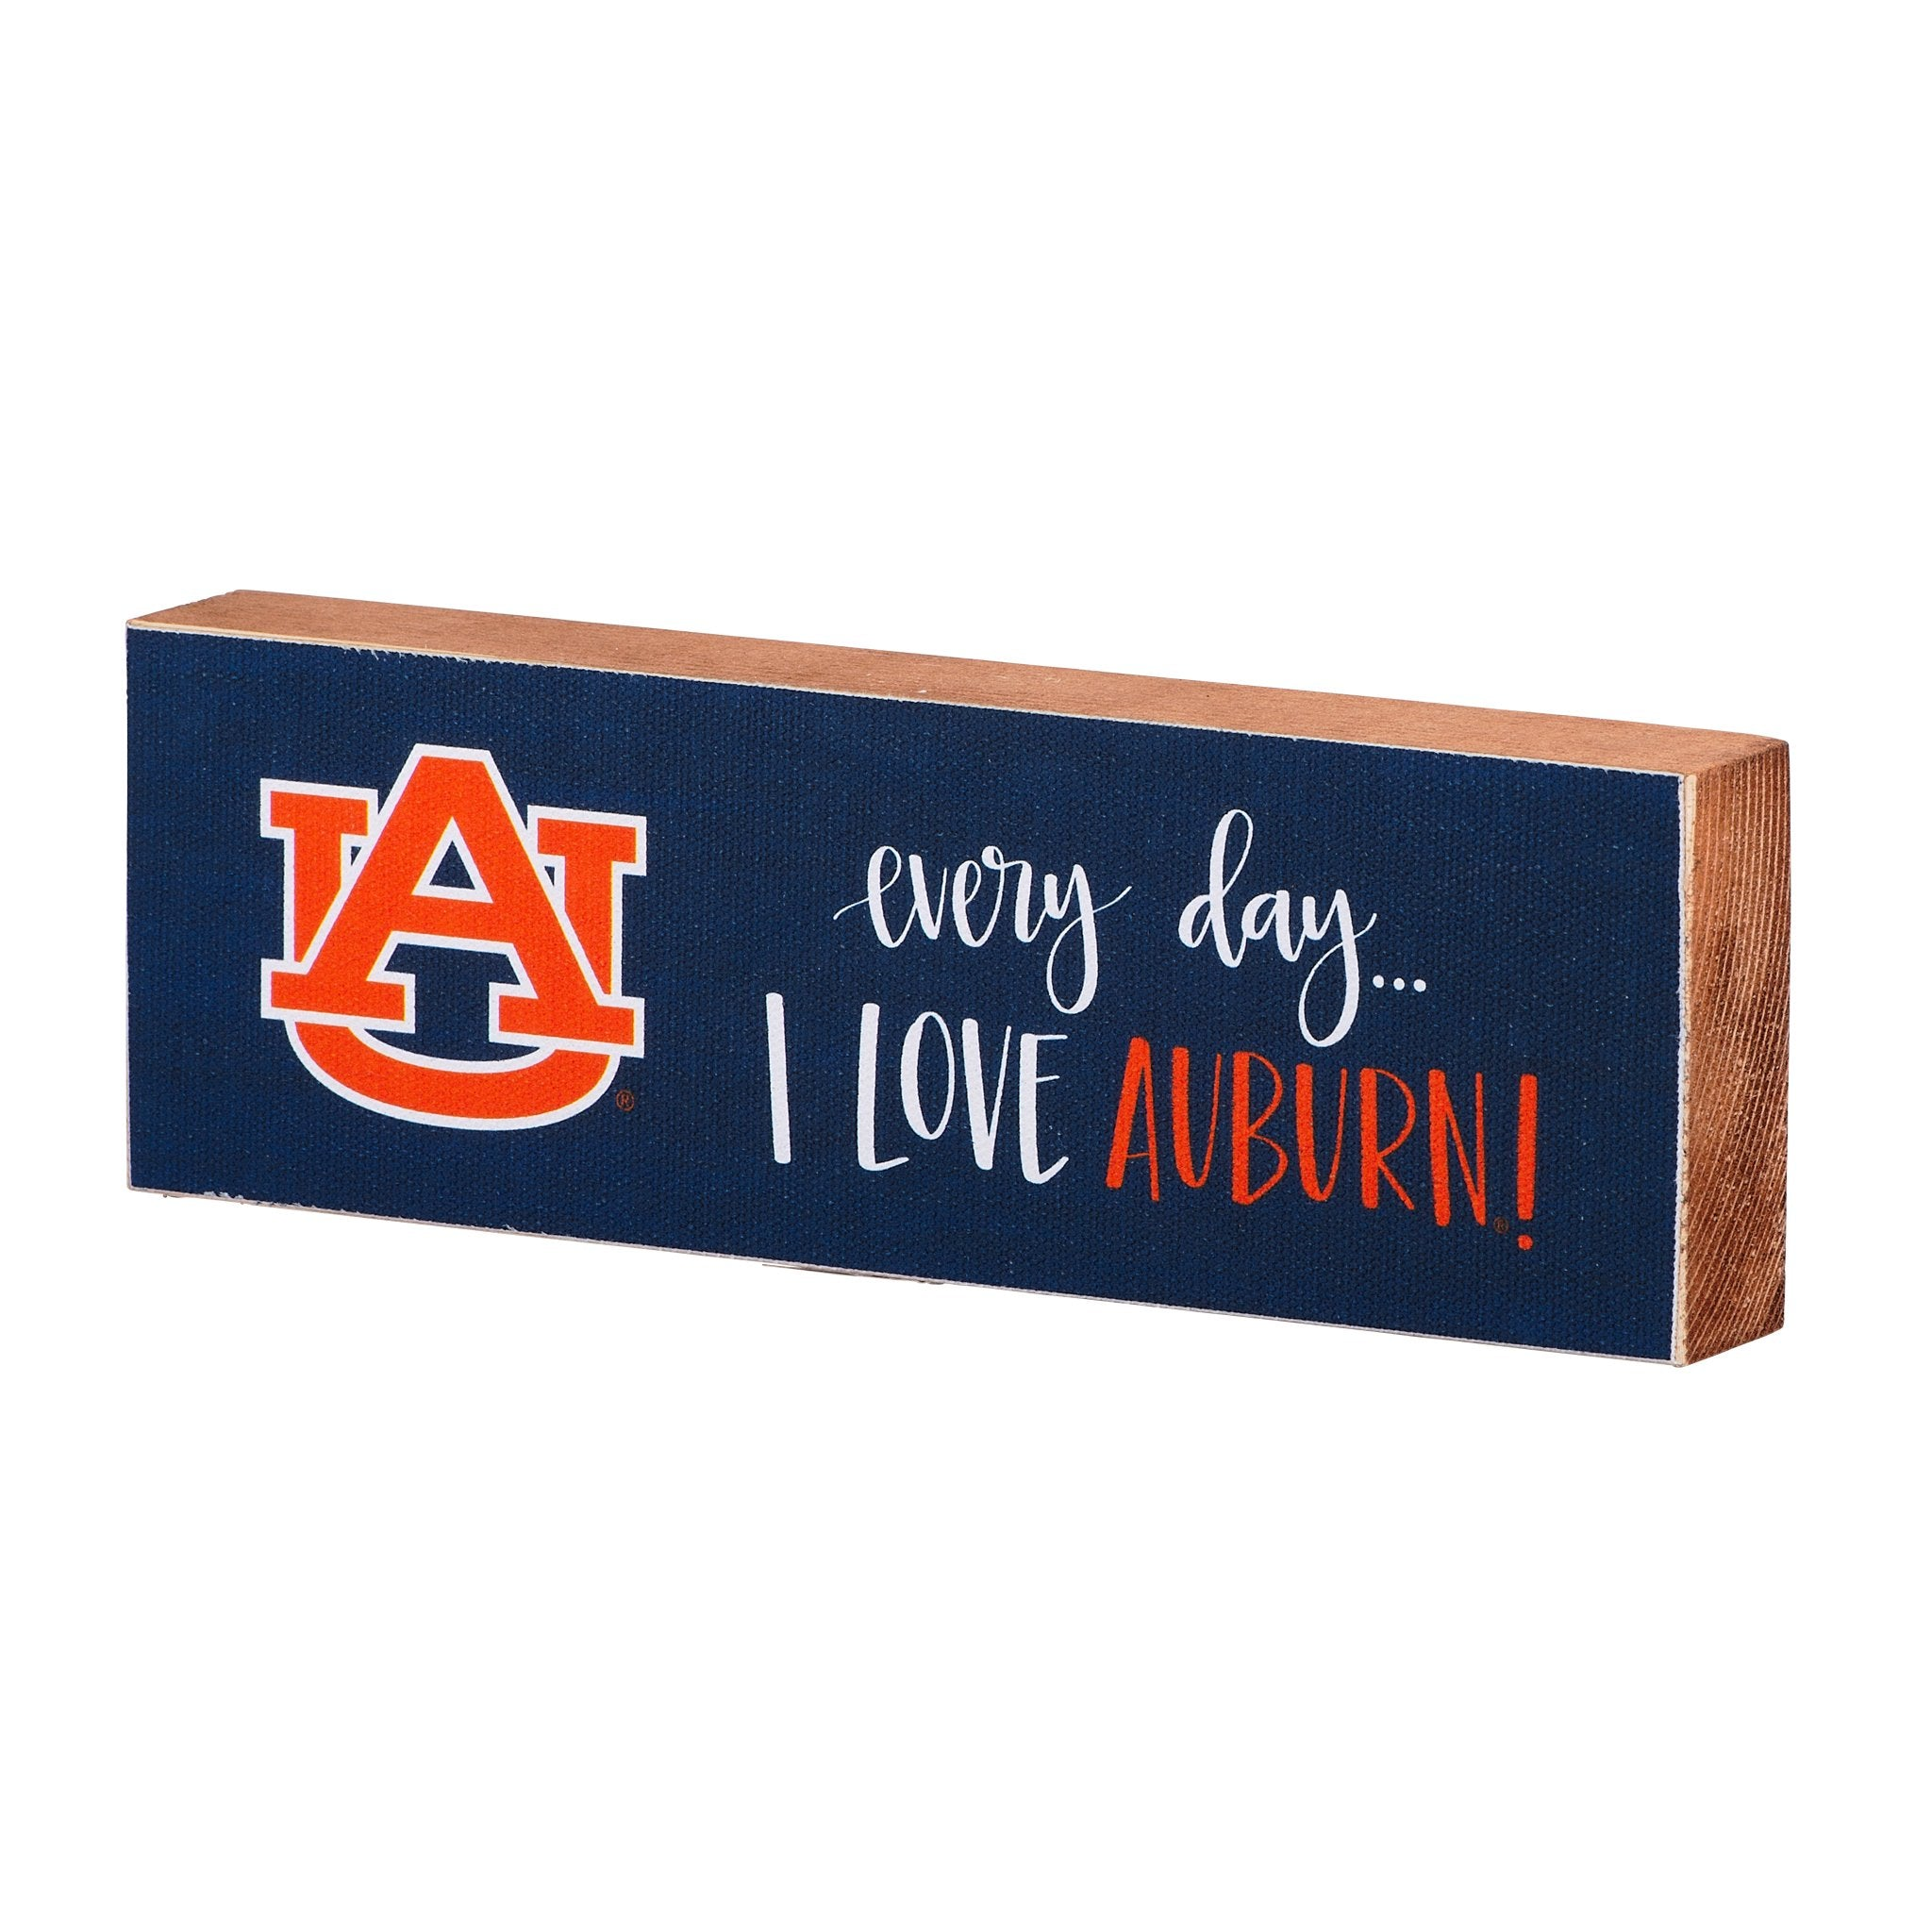 Tasteful Decor for the Auburn Fan - War Eagle! - GLORY HAUS